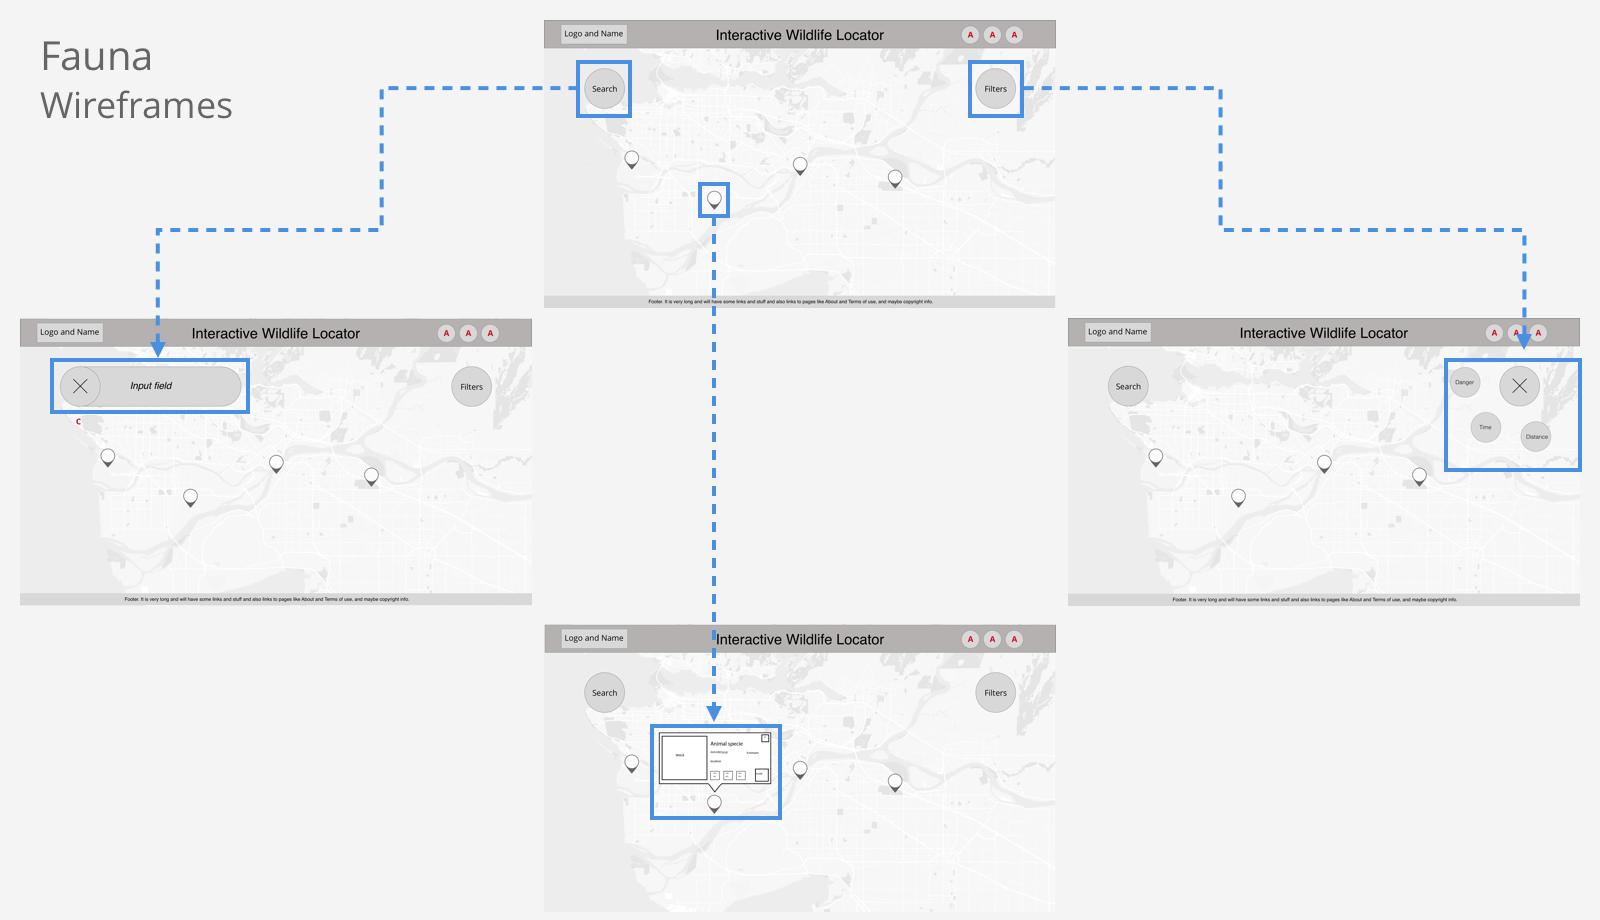 Image of Fauna App Wireframes